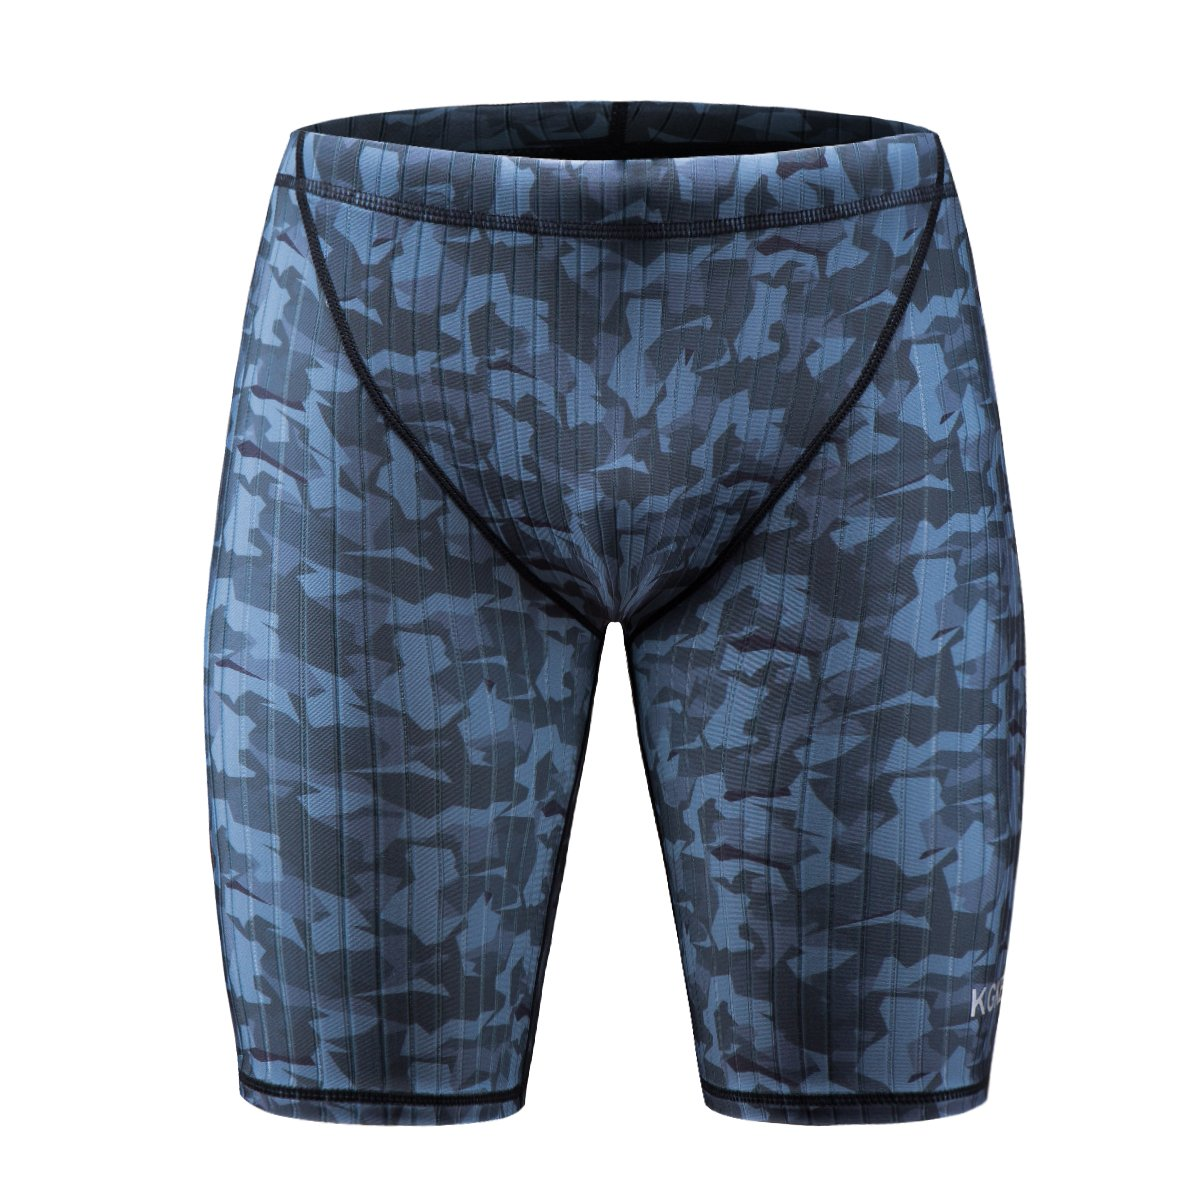 KGKE Men's Swim Jammers Compression Fashion Print Jammer Swimsuit Swim Boxer Long (M, Camo Strip)